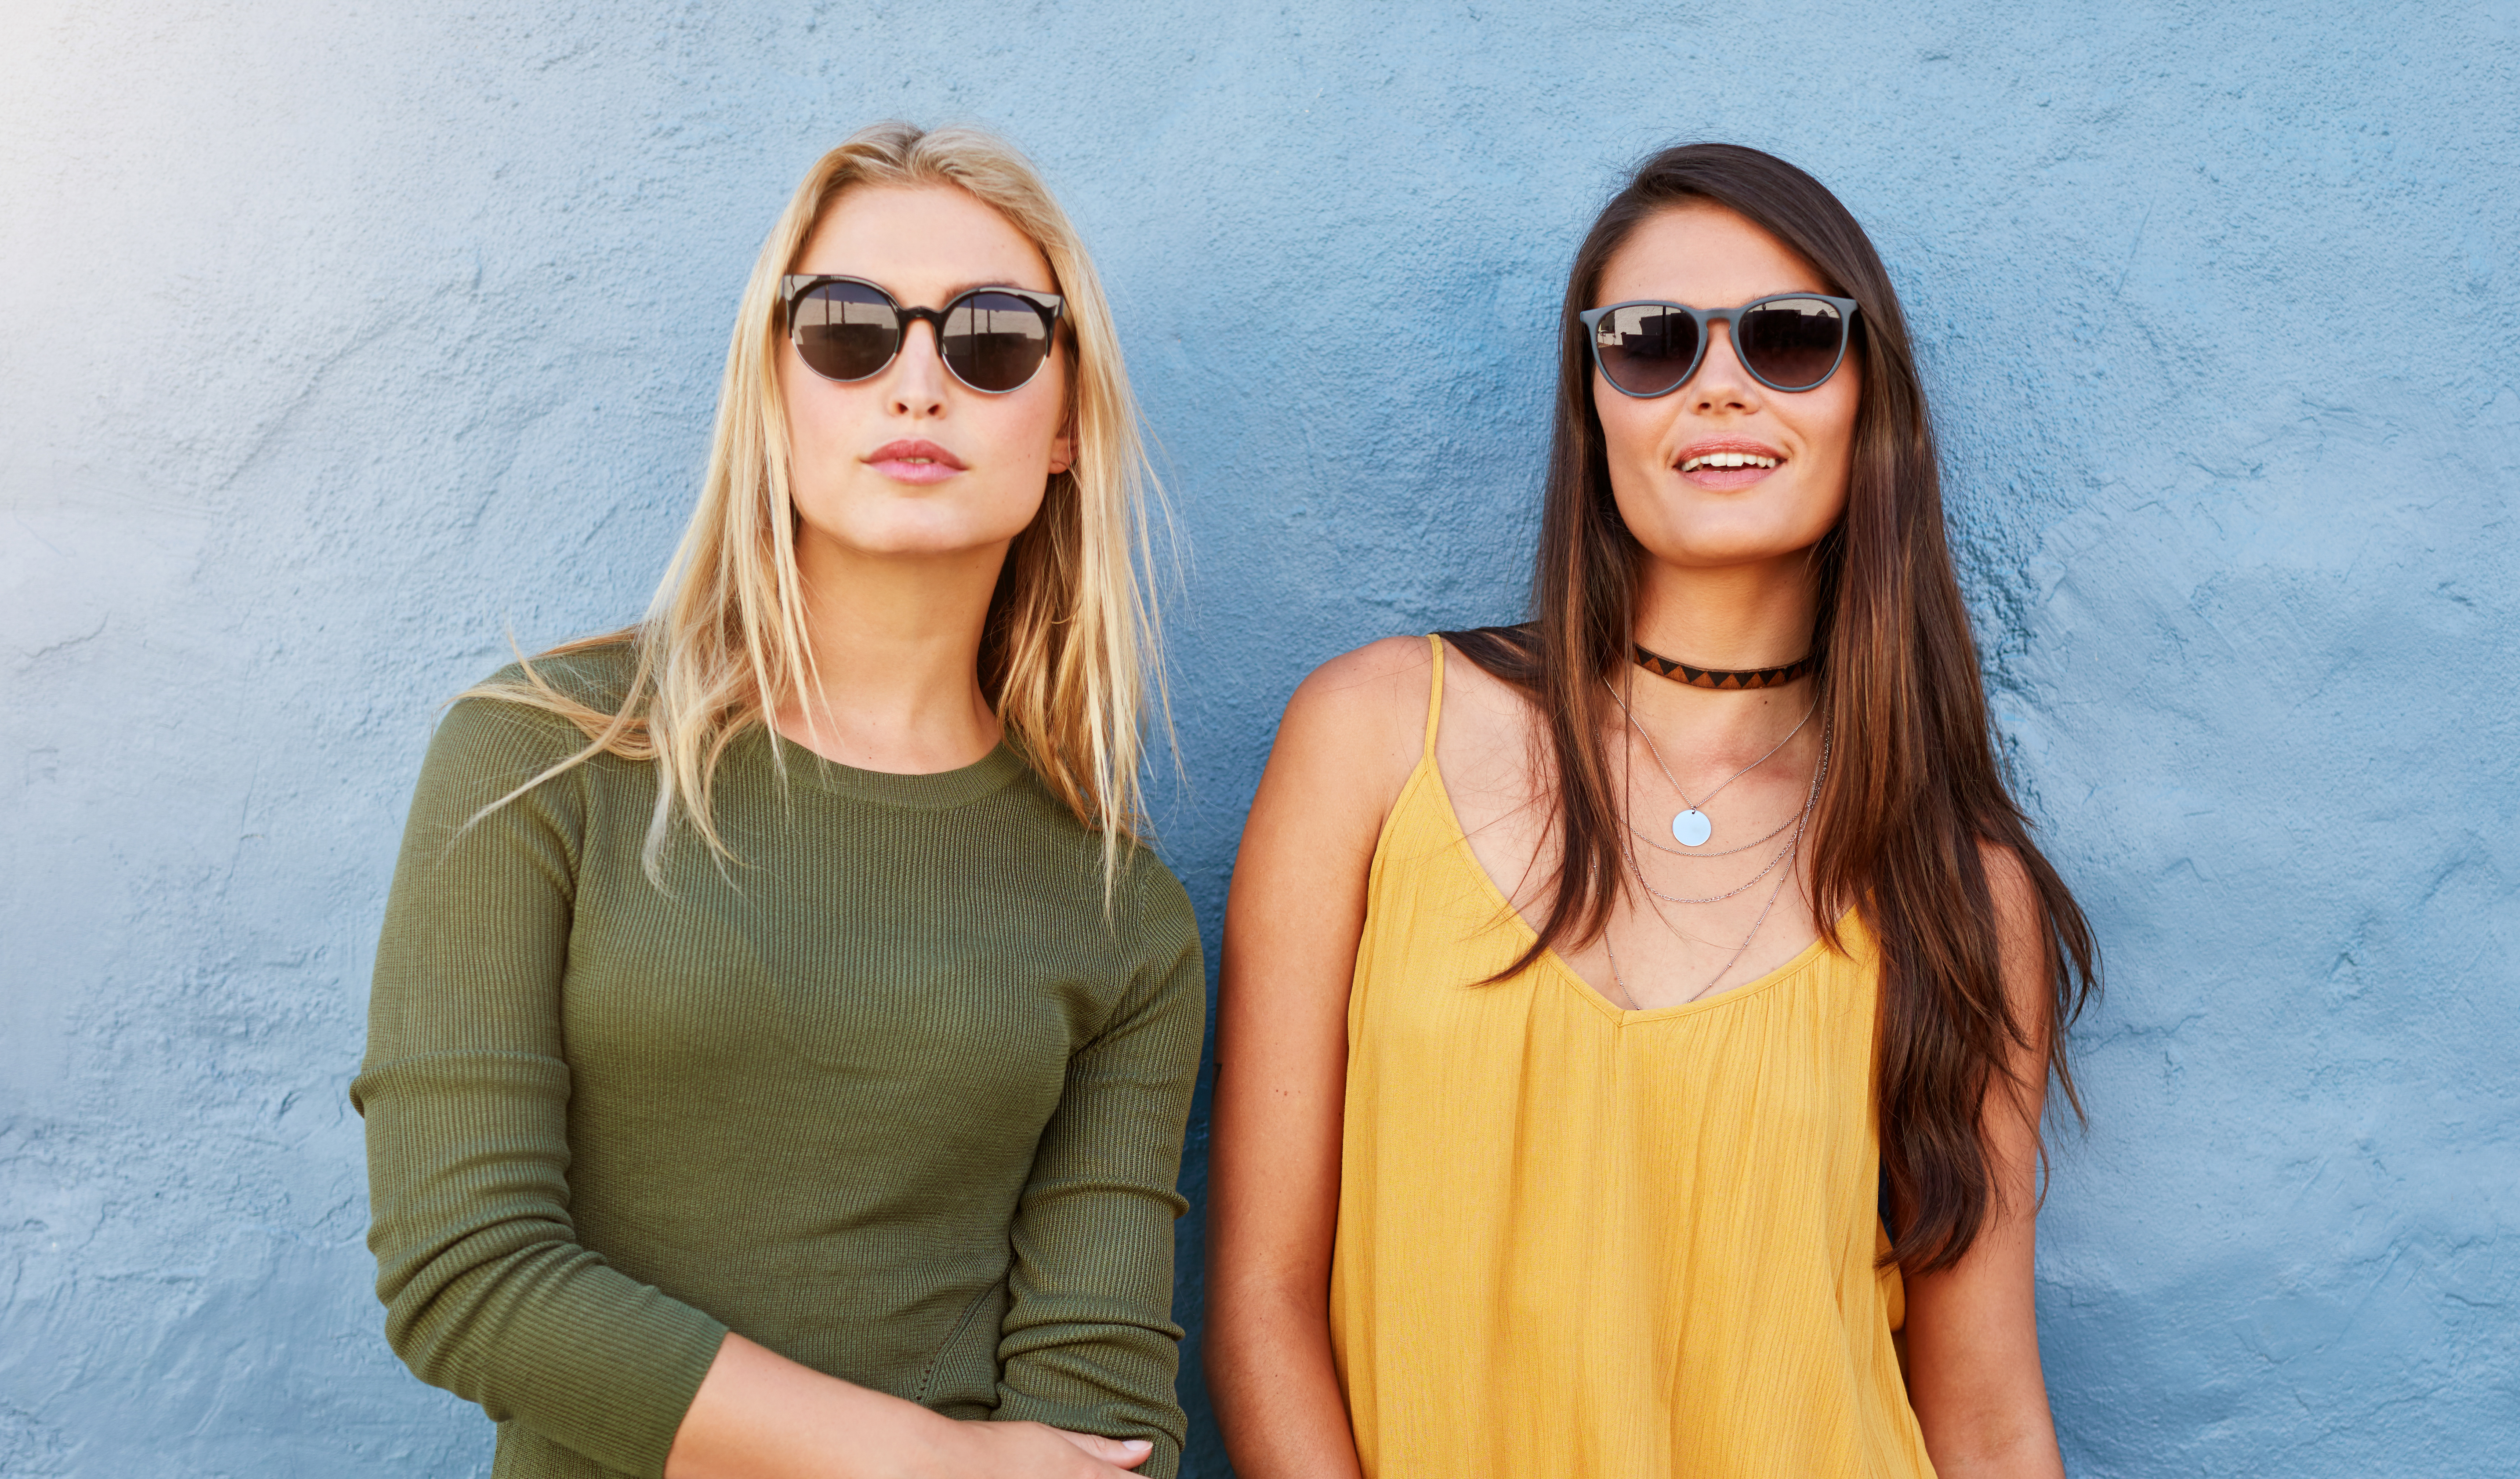 Women Wearing Sunglasses